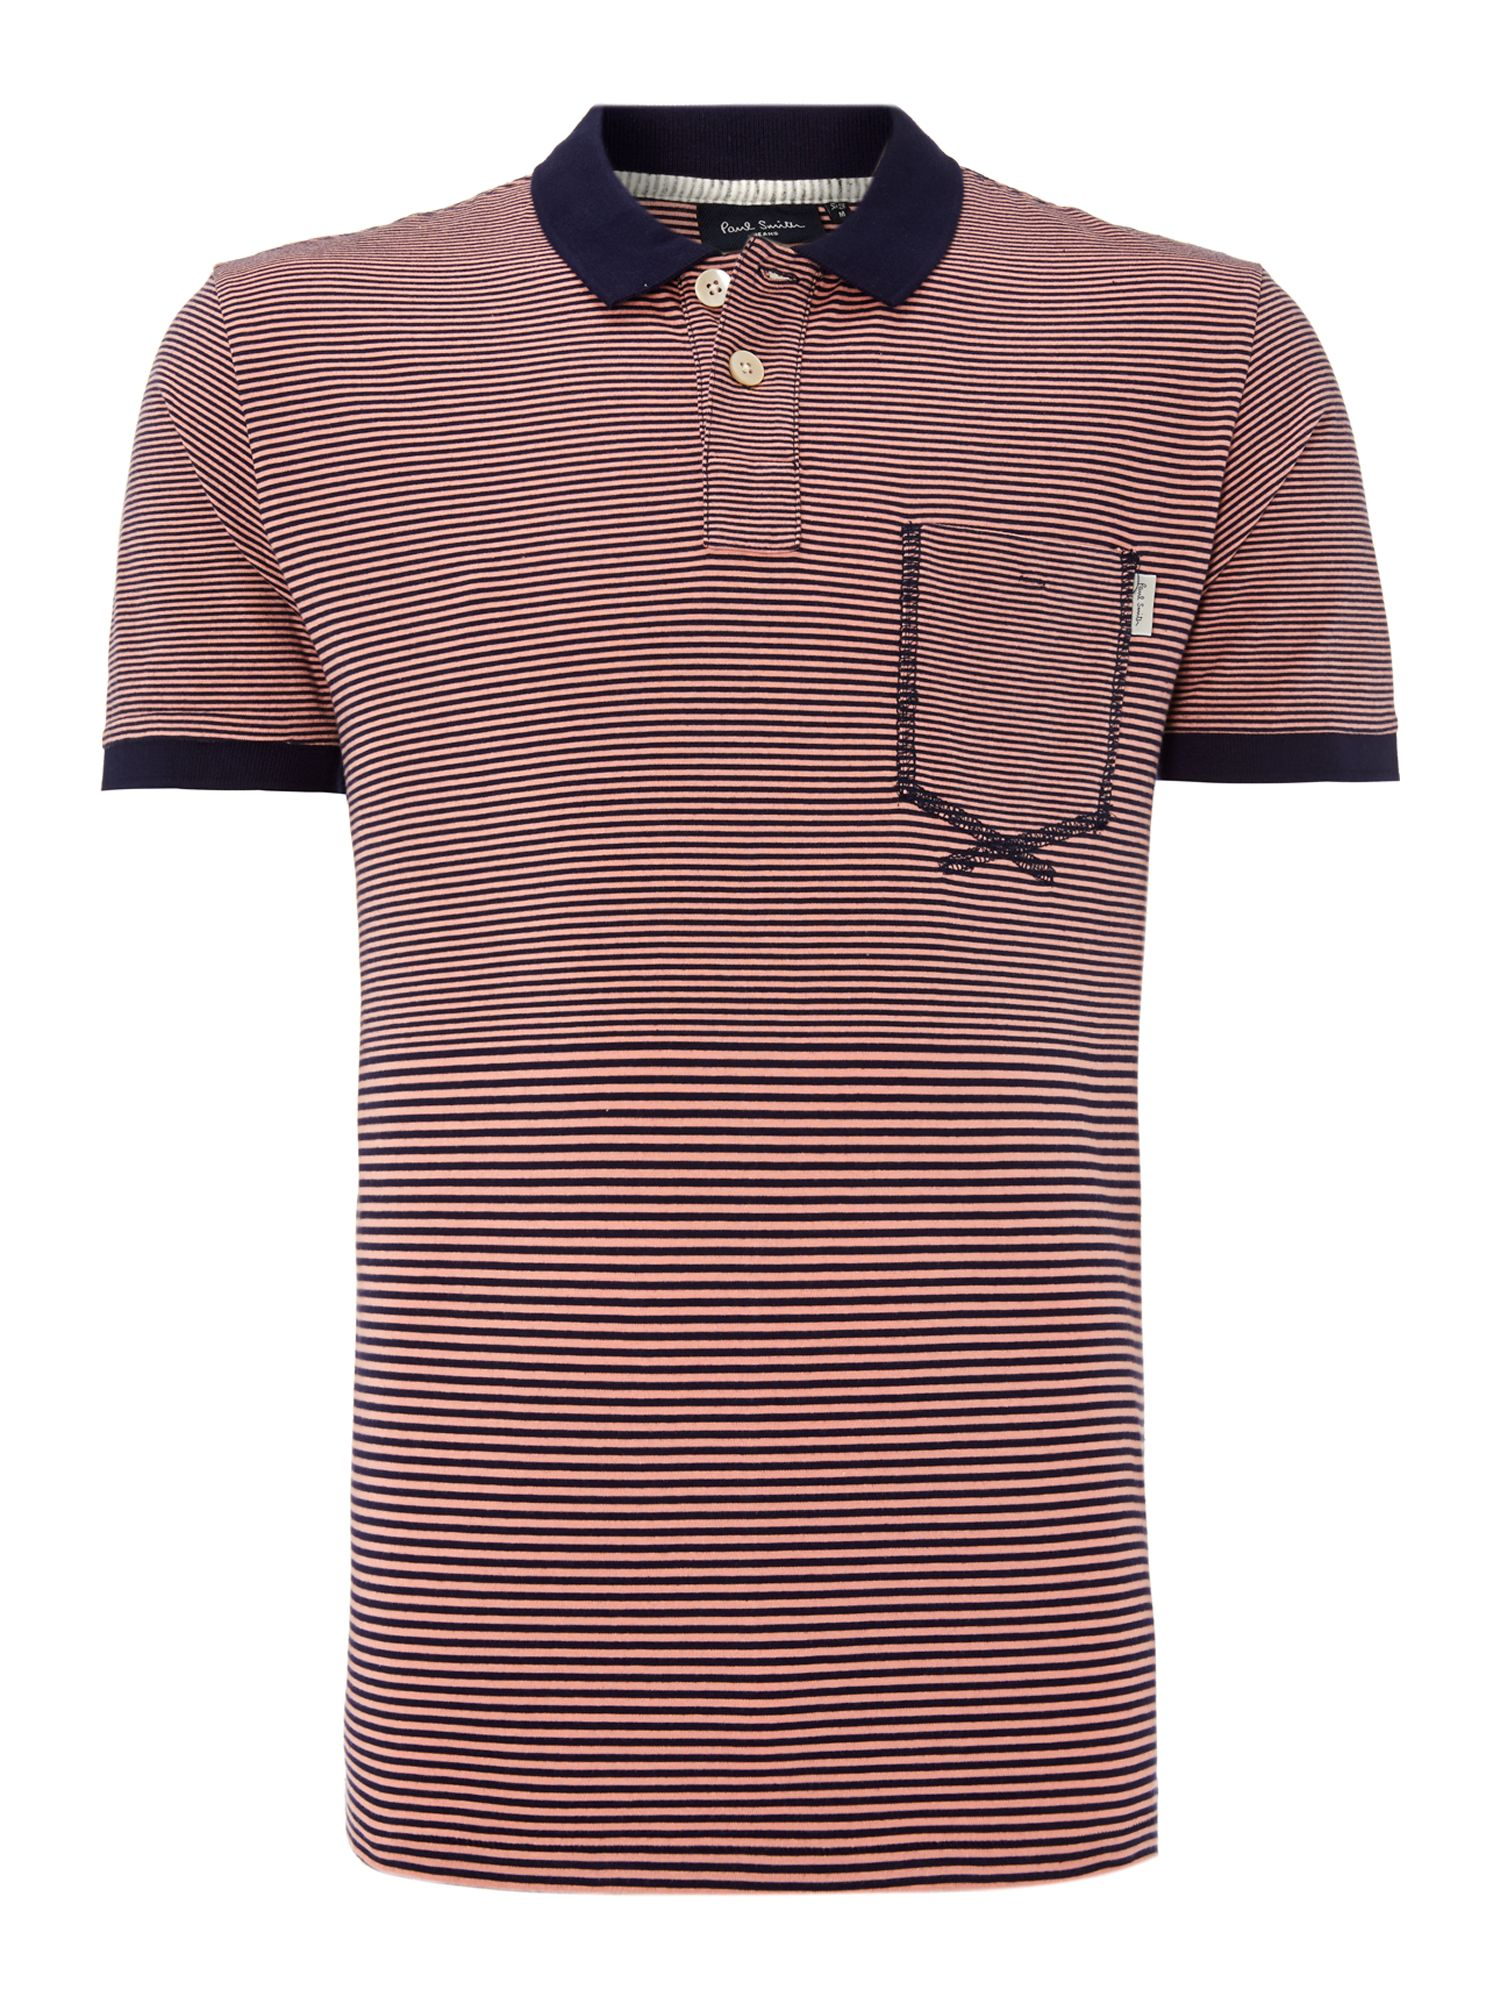 Stipe polo shirt